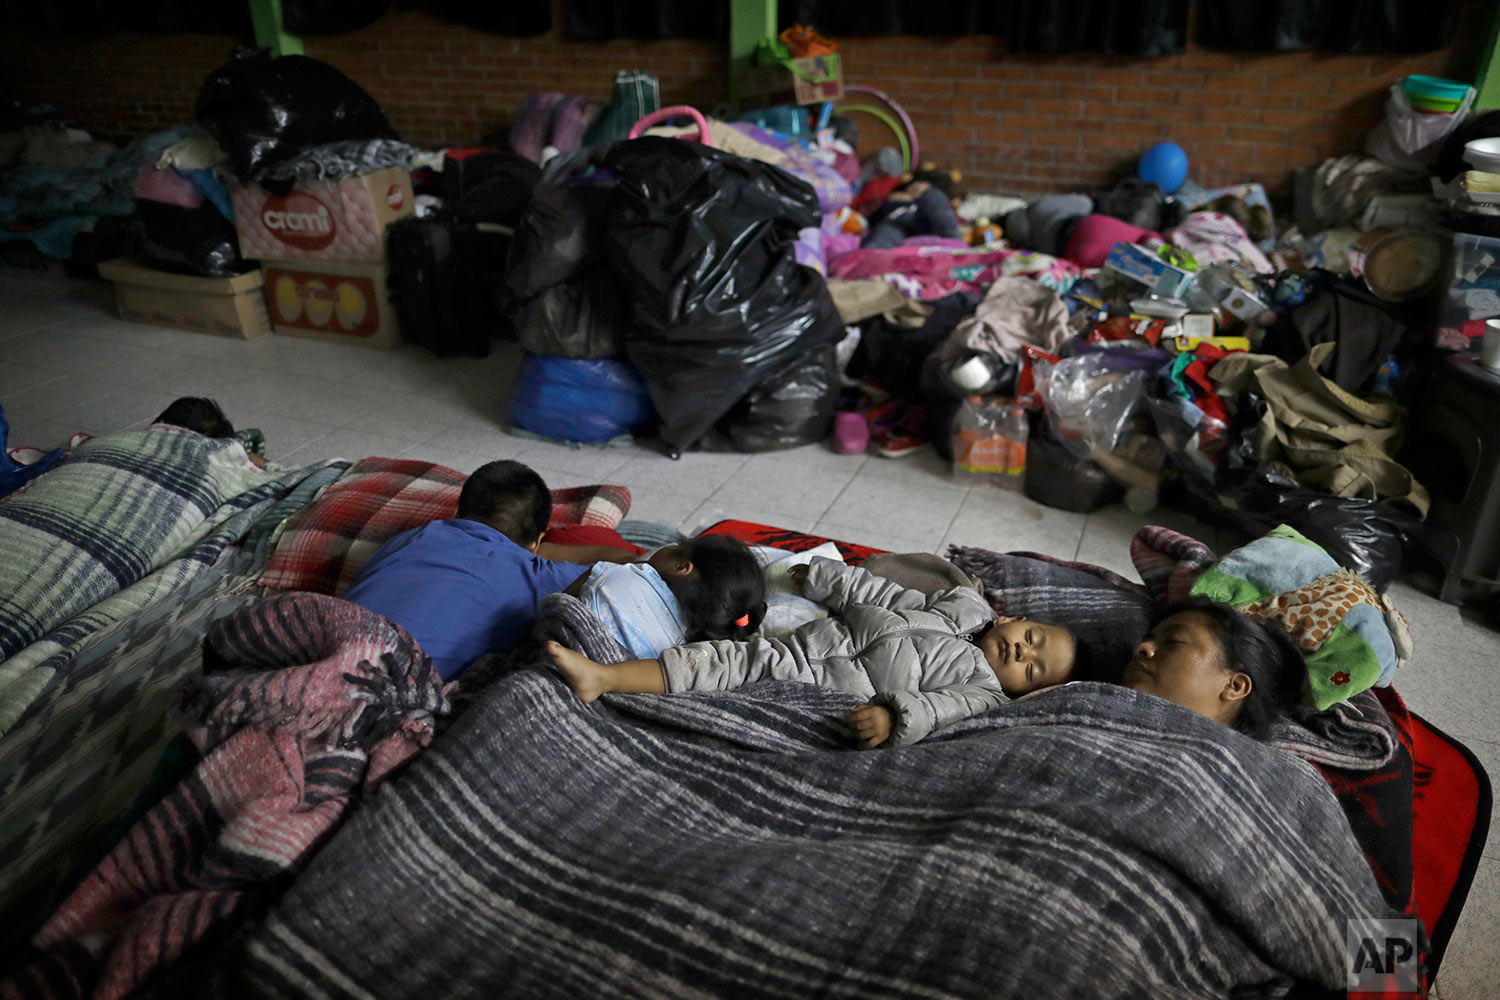 Florencia Cortes, 37, right, sleeps next to her son Jonatan at the Francisco Kino school, which was turned into a temporary shelter for residents evacuated from the large apartment complex in the Tlalpan neighborhood of Mexico City, Monday, Sept. 25, 2017. Cortes was pulled from the rubble of her apartment building along with her one-year, eight-months-old son, Jonatan. In order to get her son out, she had to swing him toward the building's plumber, who happened to be outside. He caught ahold of the boy by his foot. (AP Photo/Natacha Pisarenko)